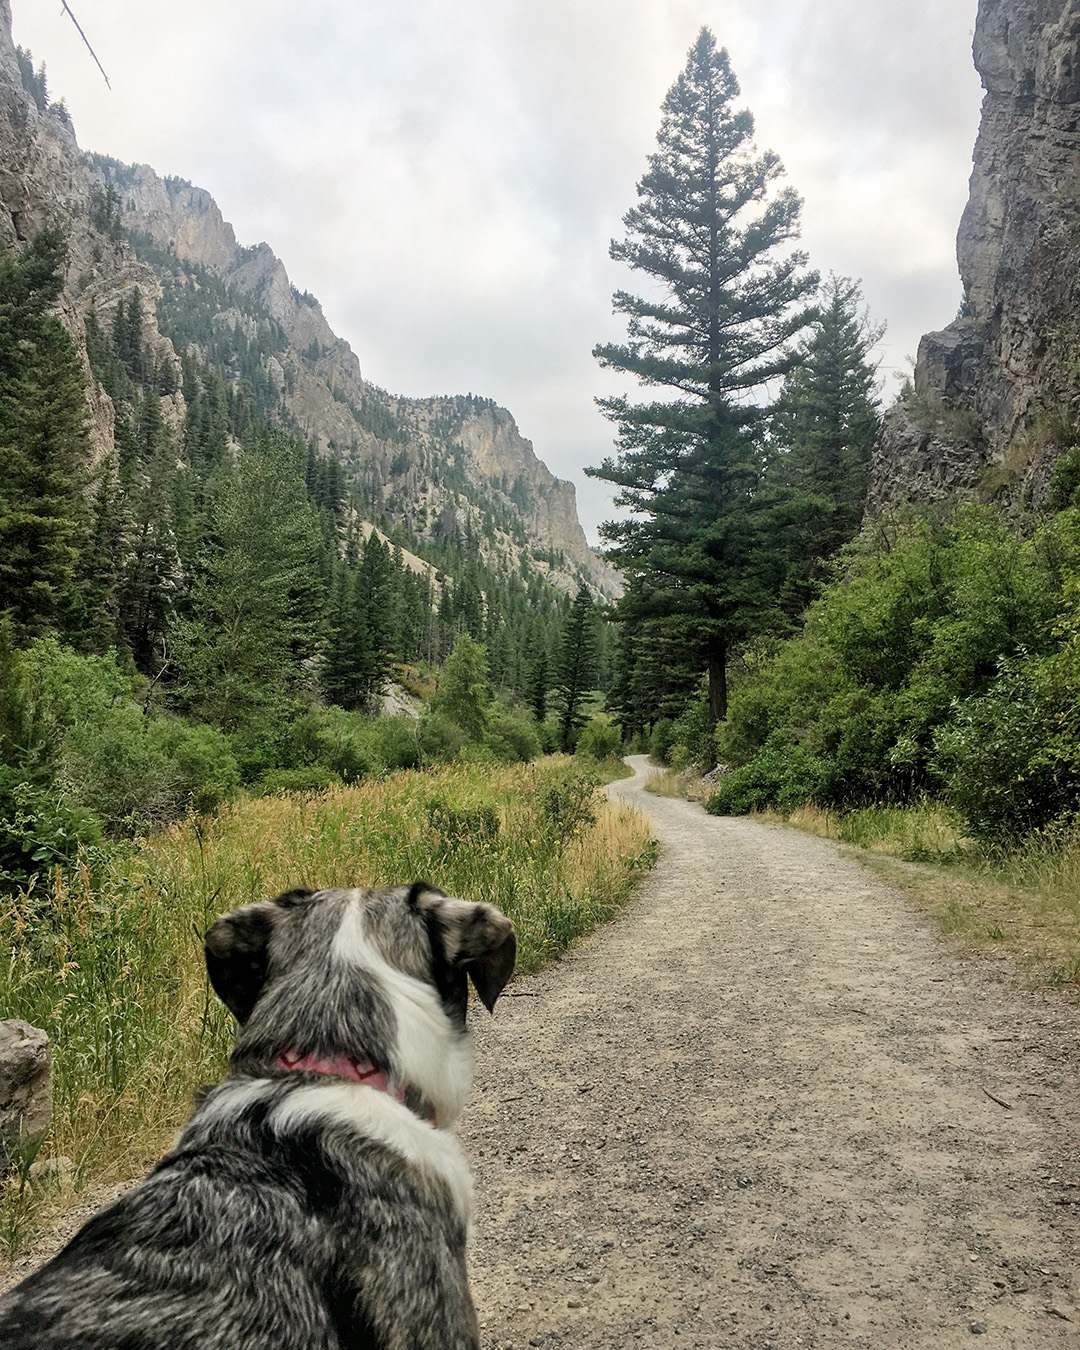 Lily looking at the trail